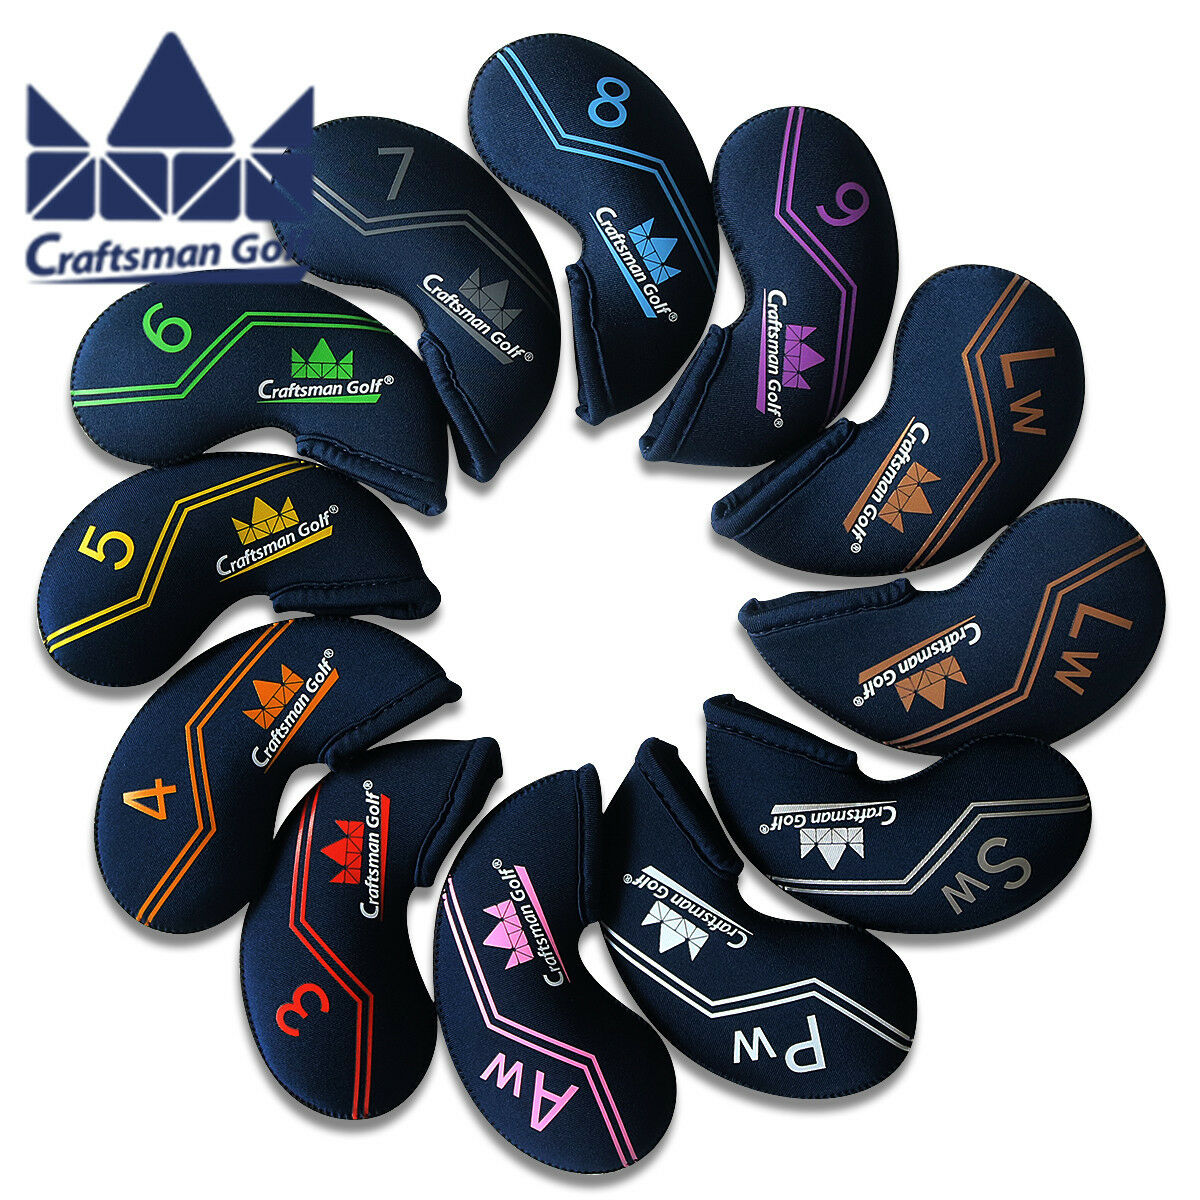 Craftsman Oem Golf Iron Covers Headcovers For Titleist Ap2